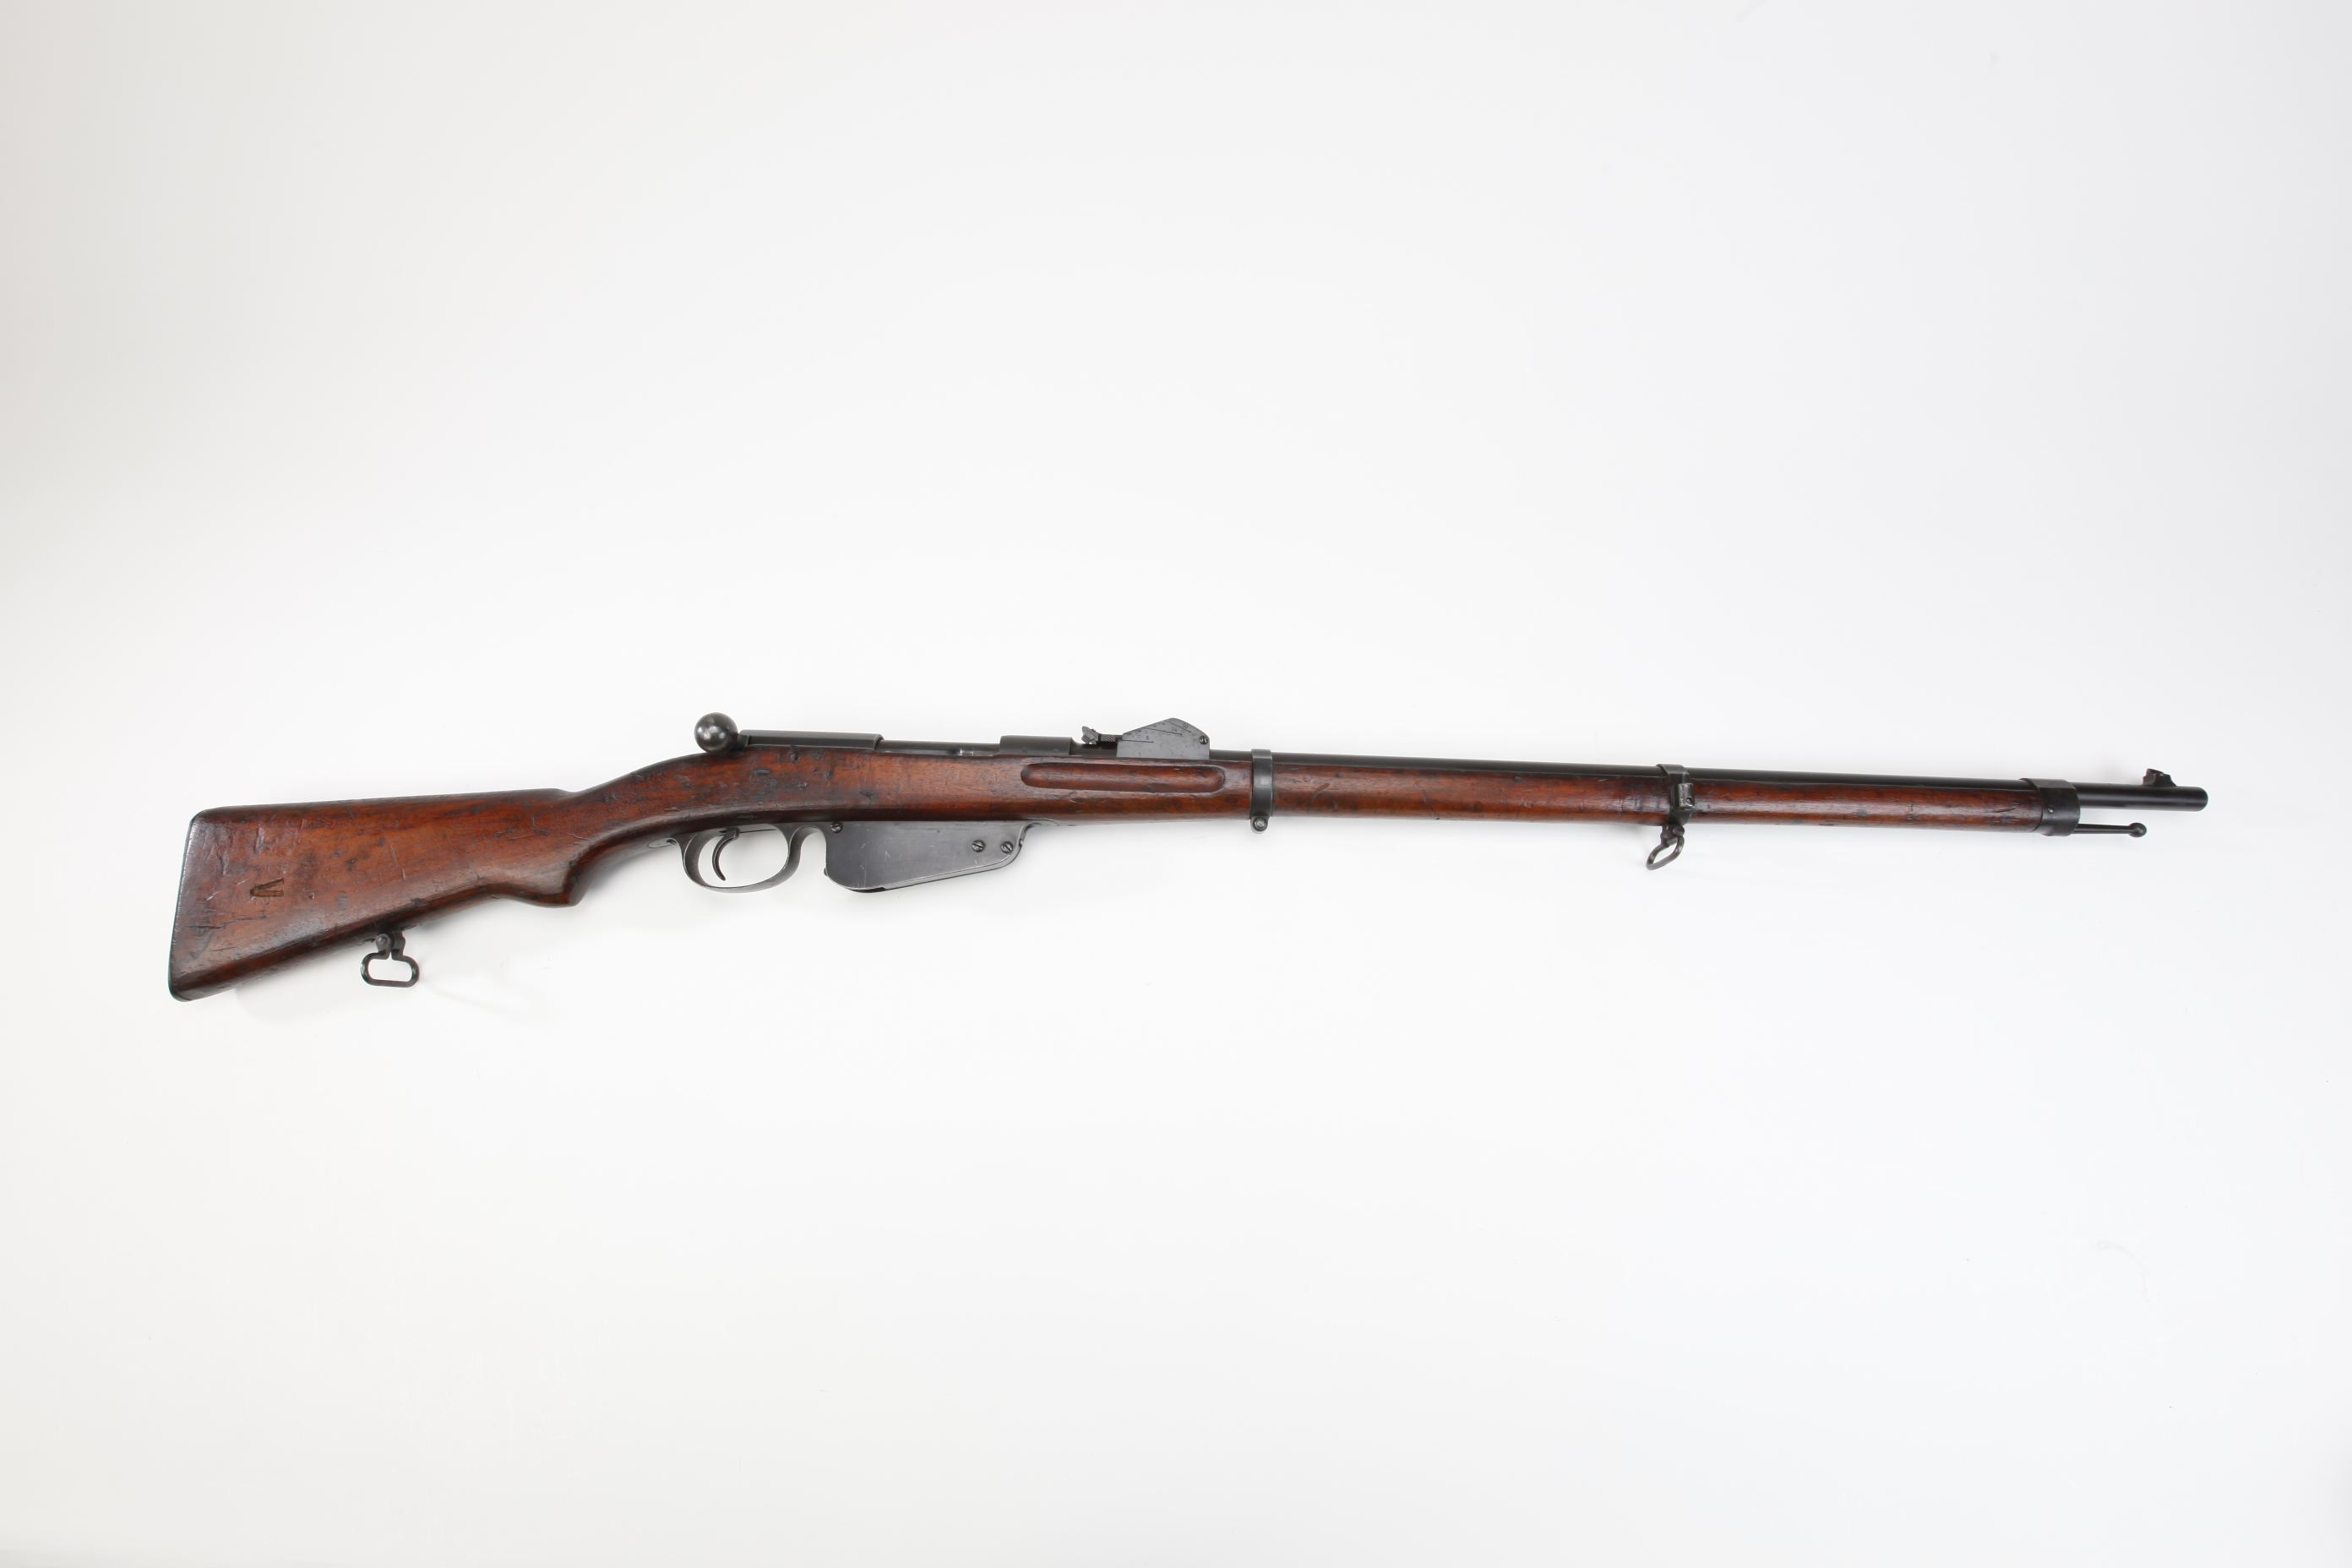 Waffenfabrik Steyr Steyr Mannlicher Model 1890 Bolt Action Rifle